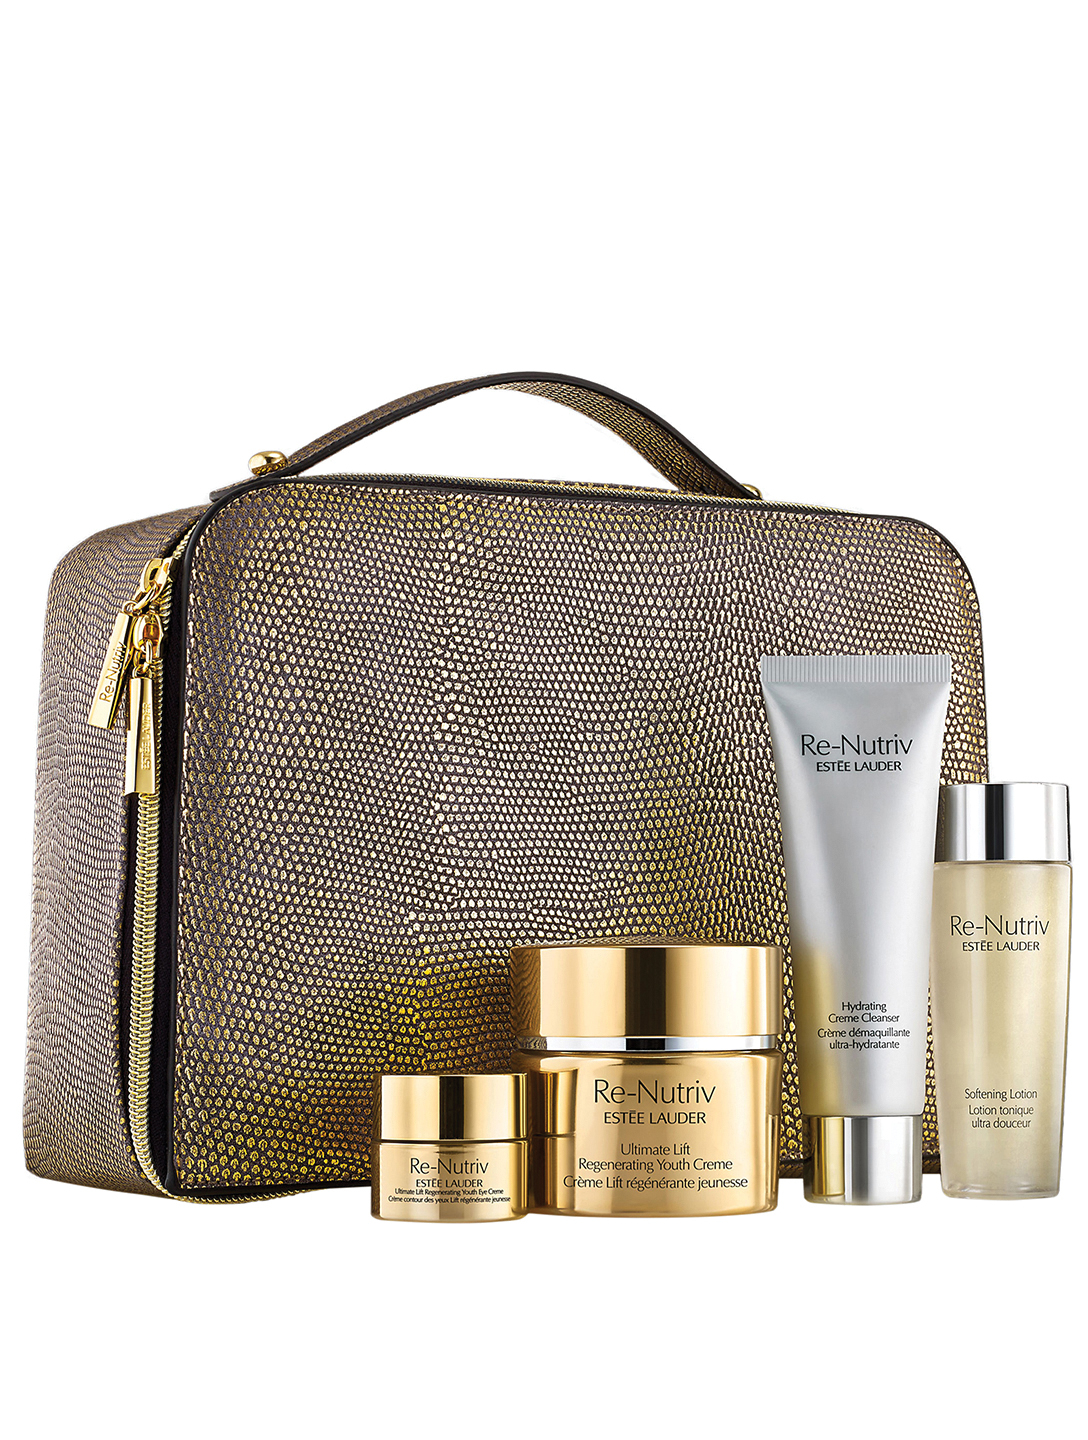 ESTÉE LAUDER Ultimate Lift Regenerating Youth Collection for Face Beauty